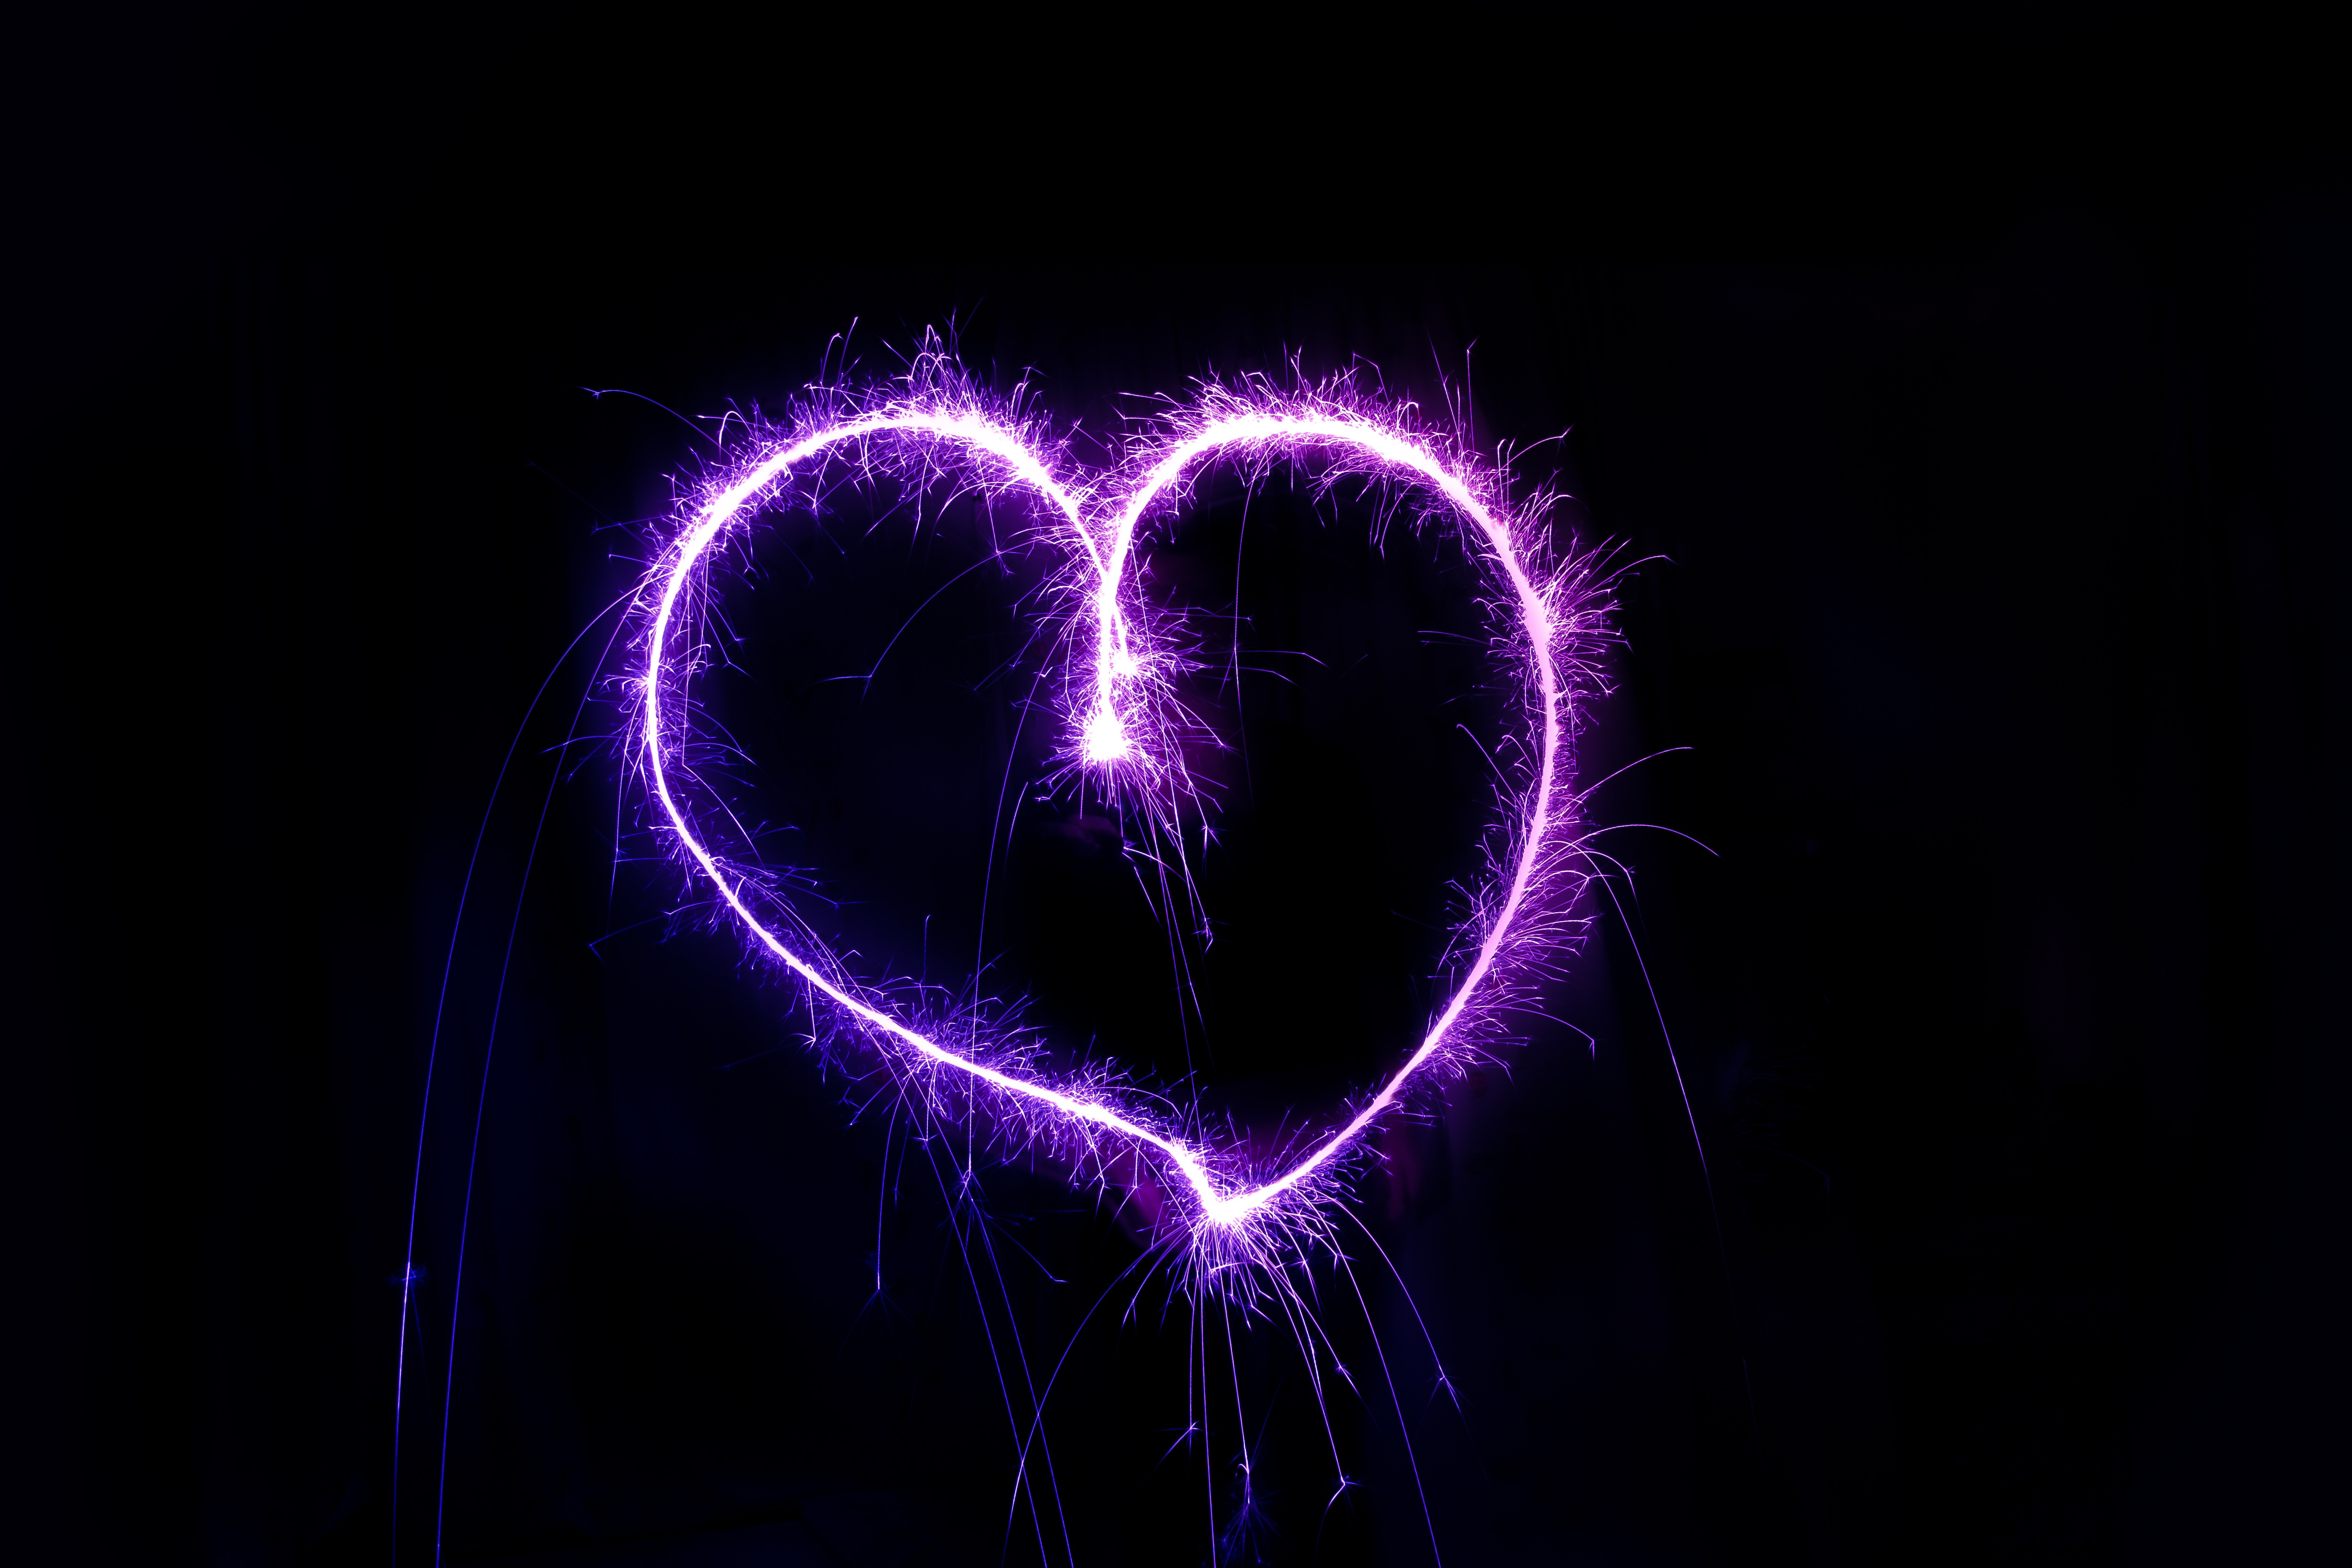 121866 download wallpaper Love, Heart, Sparks, Form, Shine, Brilliance screensavers and pictures for free